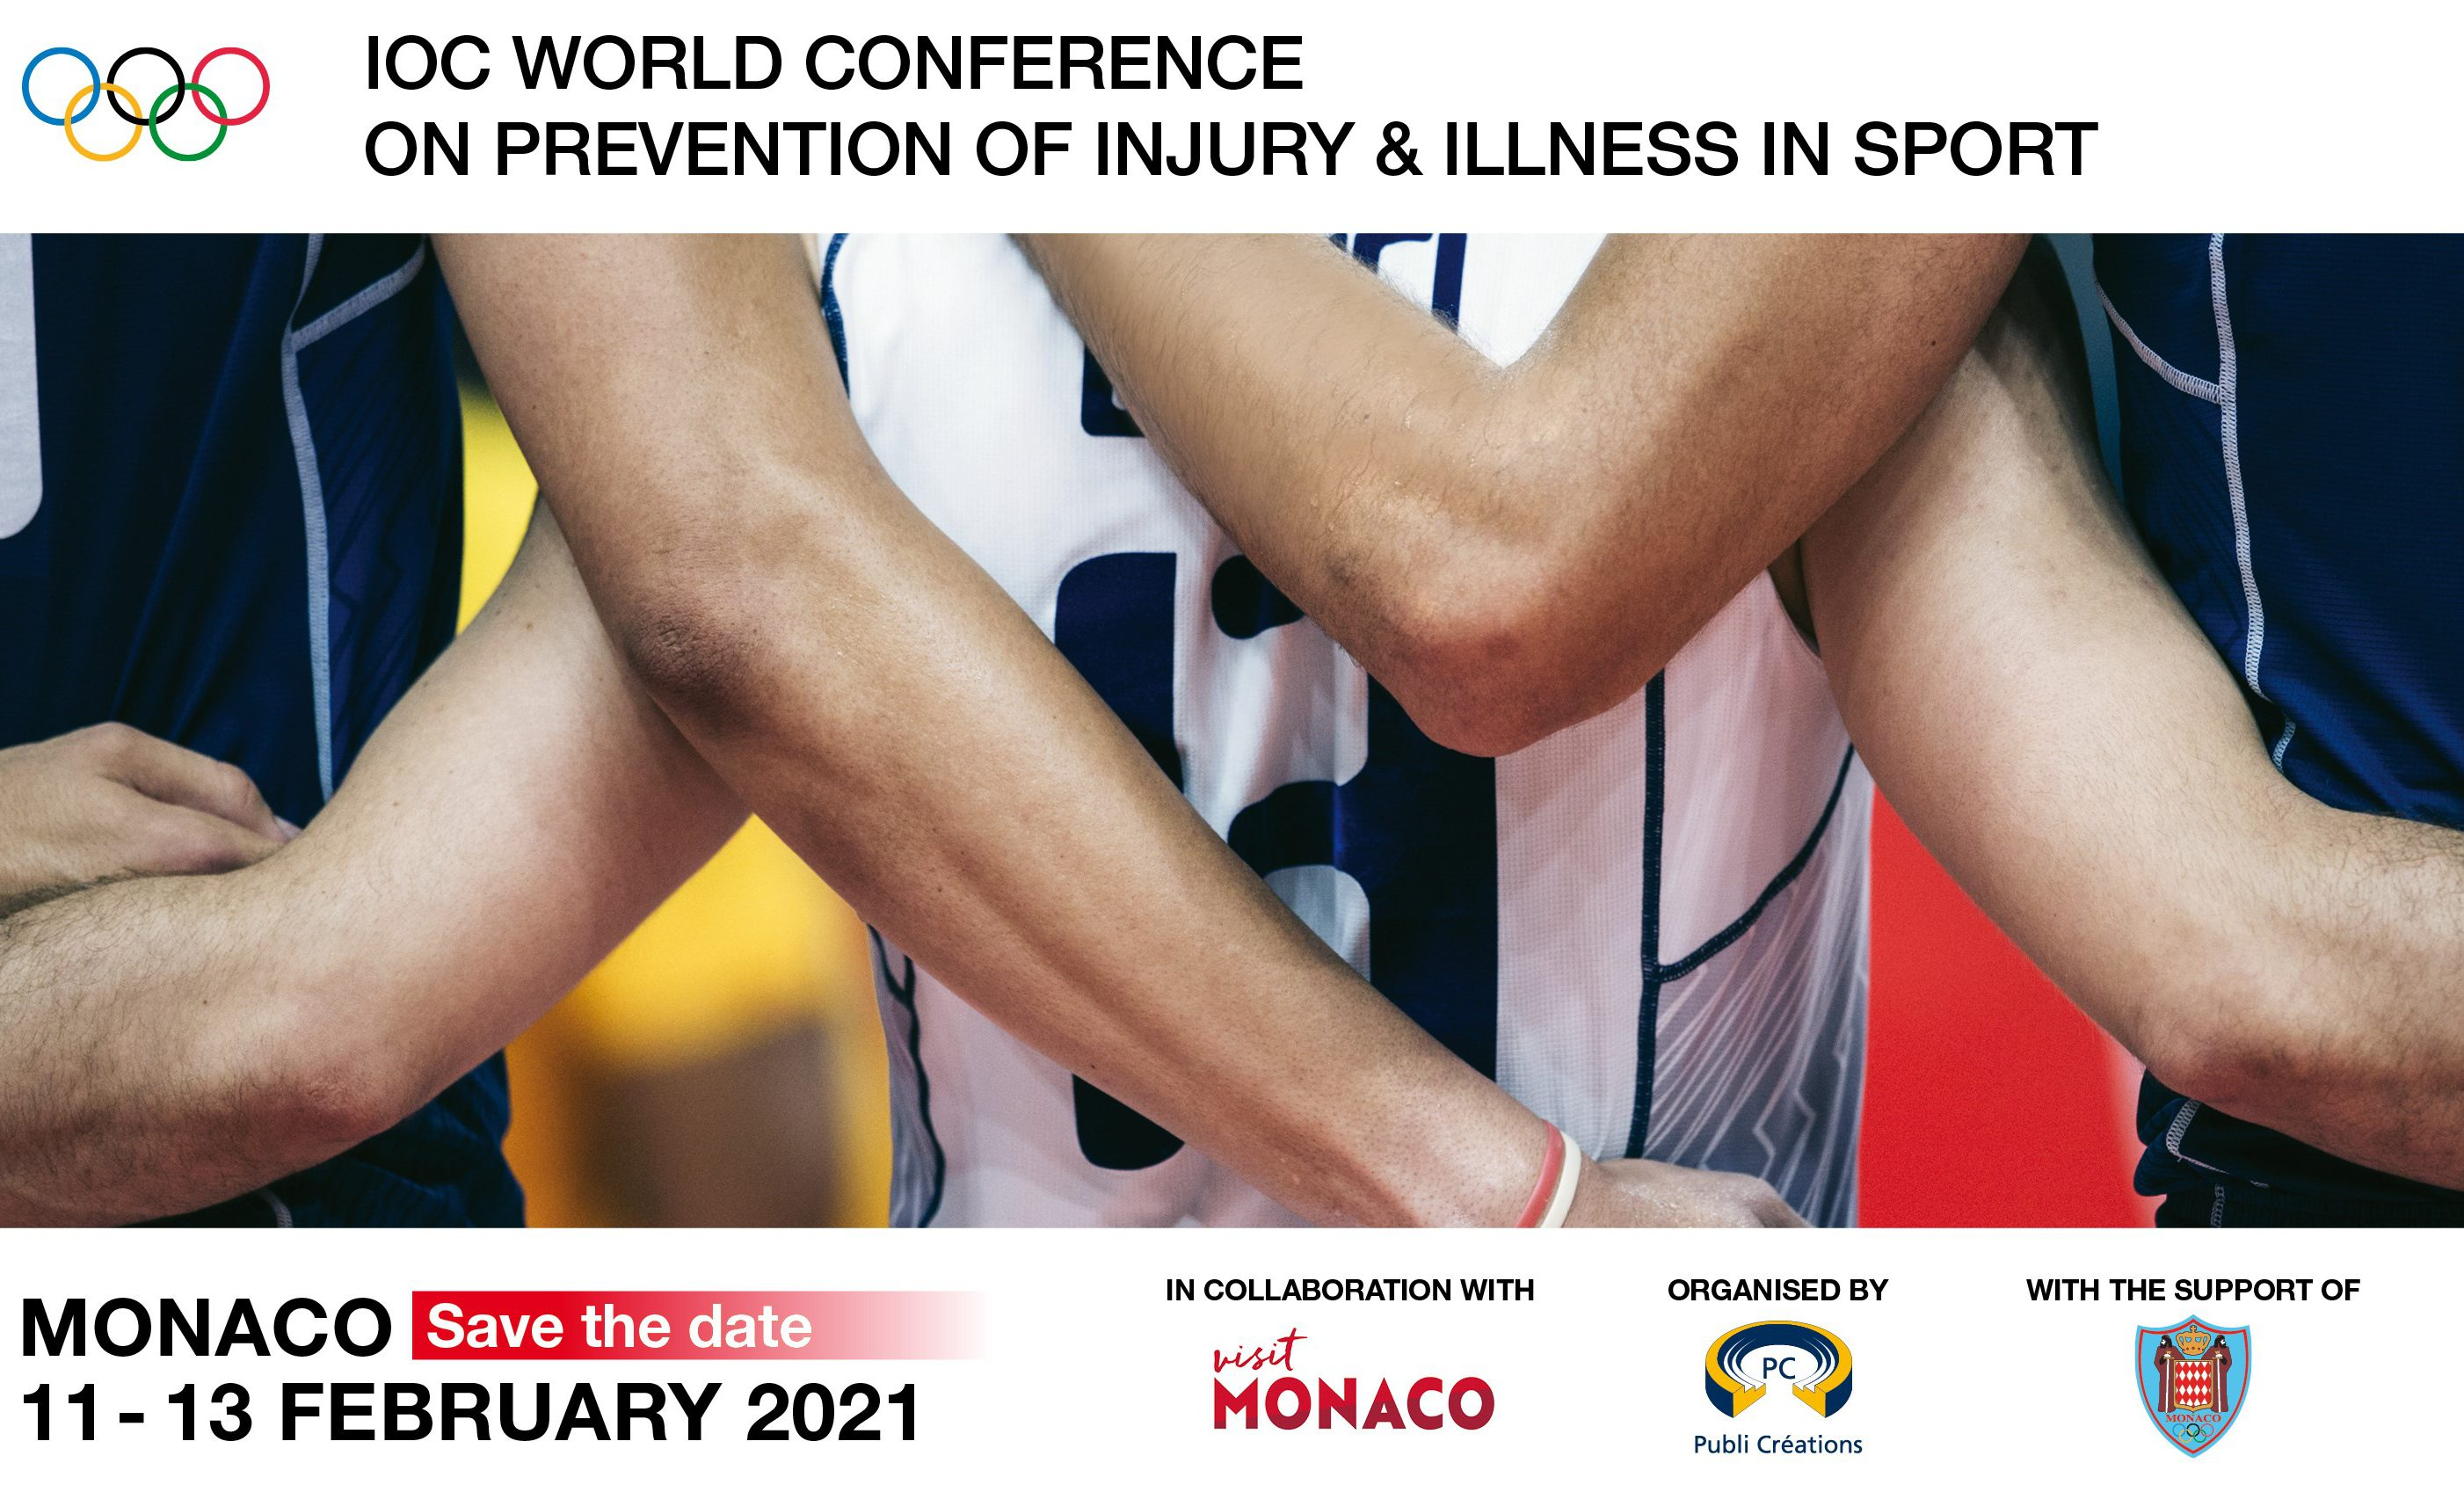 IOC World Conference on Prevention of Injury and Illness in Sport 2021